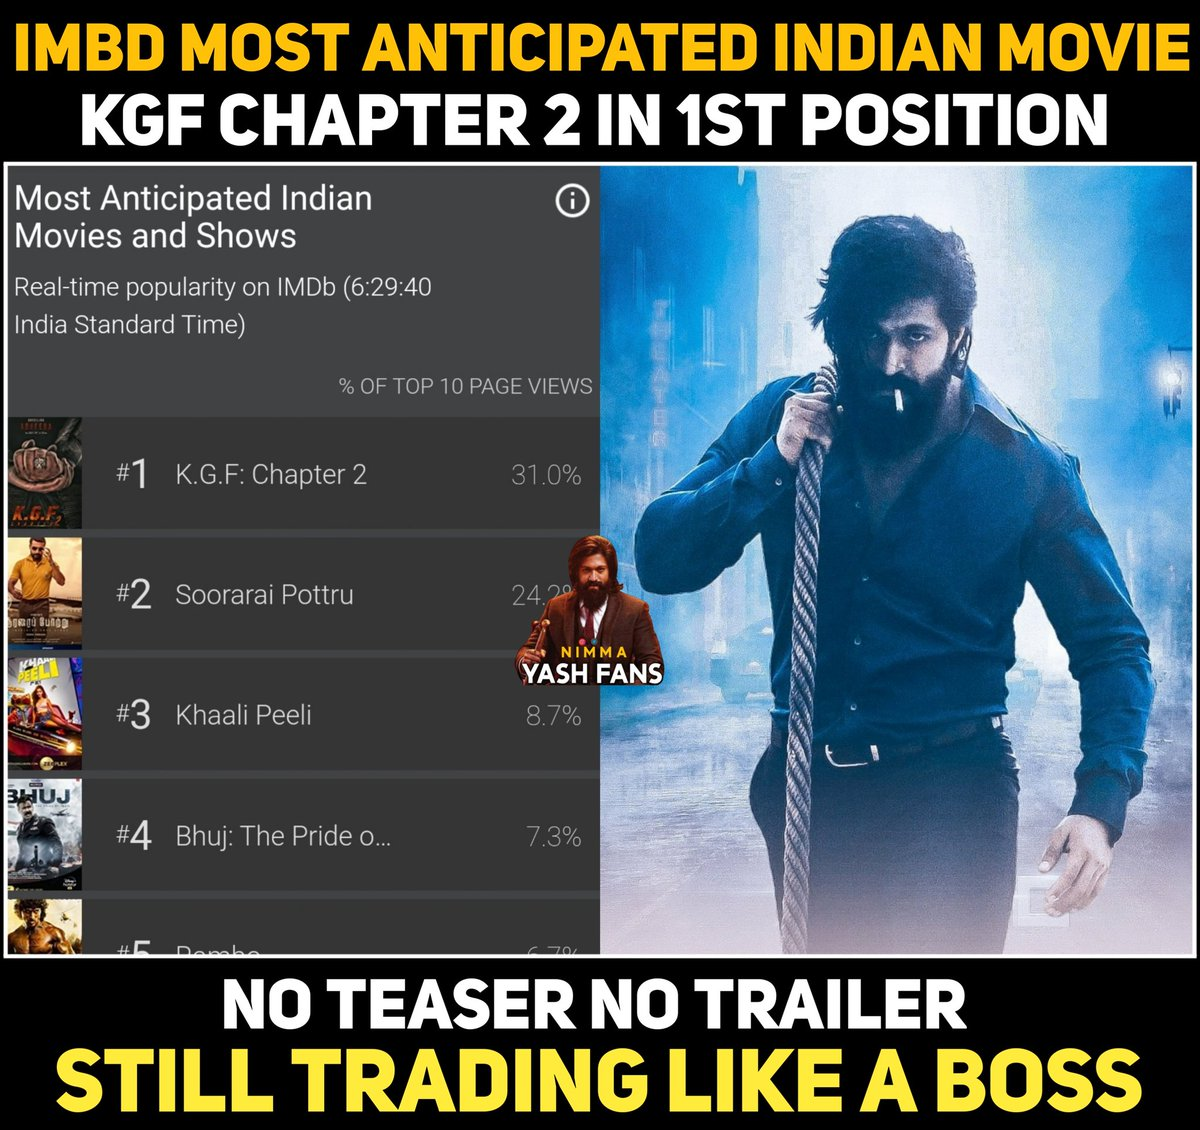 Most Anticipated Indian Movie #KGFChapter2 at #1st Position @TheNameIsYash  #Yash #Yashboss #KGF #most #anticipated #thenameisyash #Imbd #Indianmovie #KGF2 https://t.co/zWZGFIlyXh